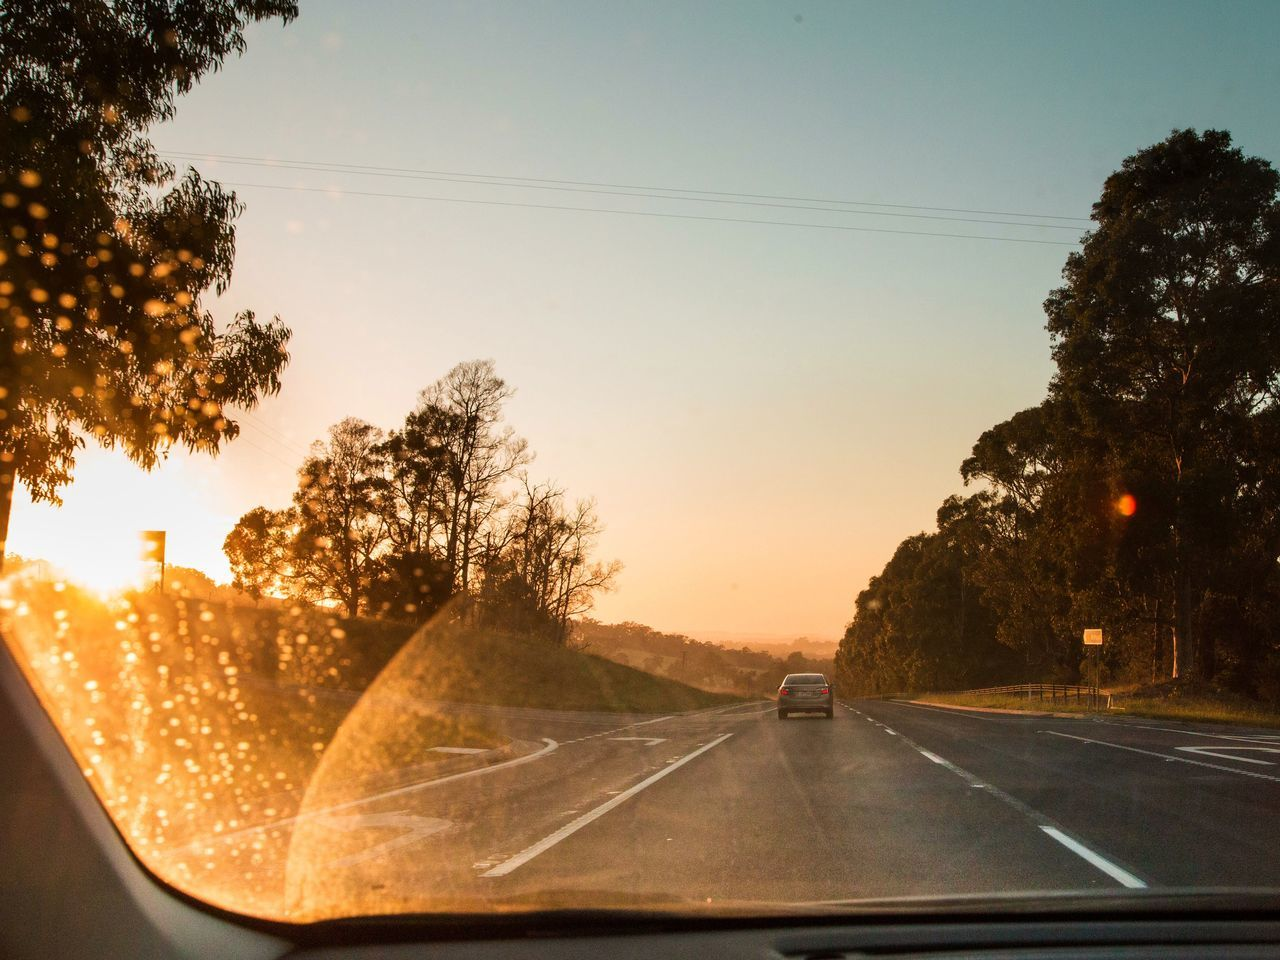 the next great adventure Road Car Windshield Sunrise Sunrise_Collection The Way Forward Transportation Car Point Of View Journey Driving Road Trip Dashboard Nature Outdoors Sky The Great Outdoors - 2017 EyeEm Awards Travel Traveling Travel Photography